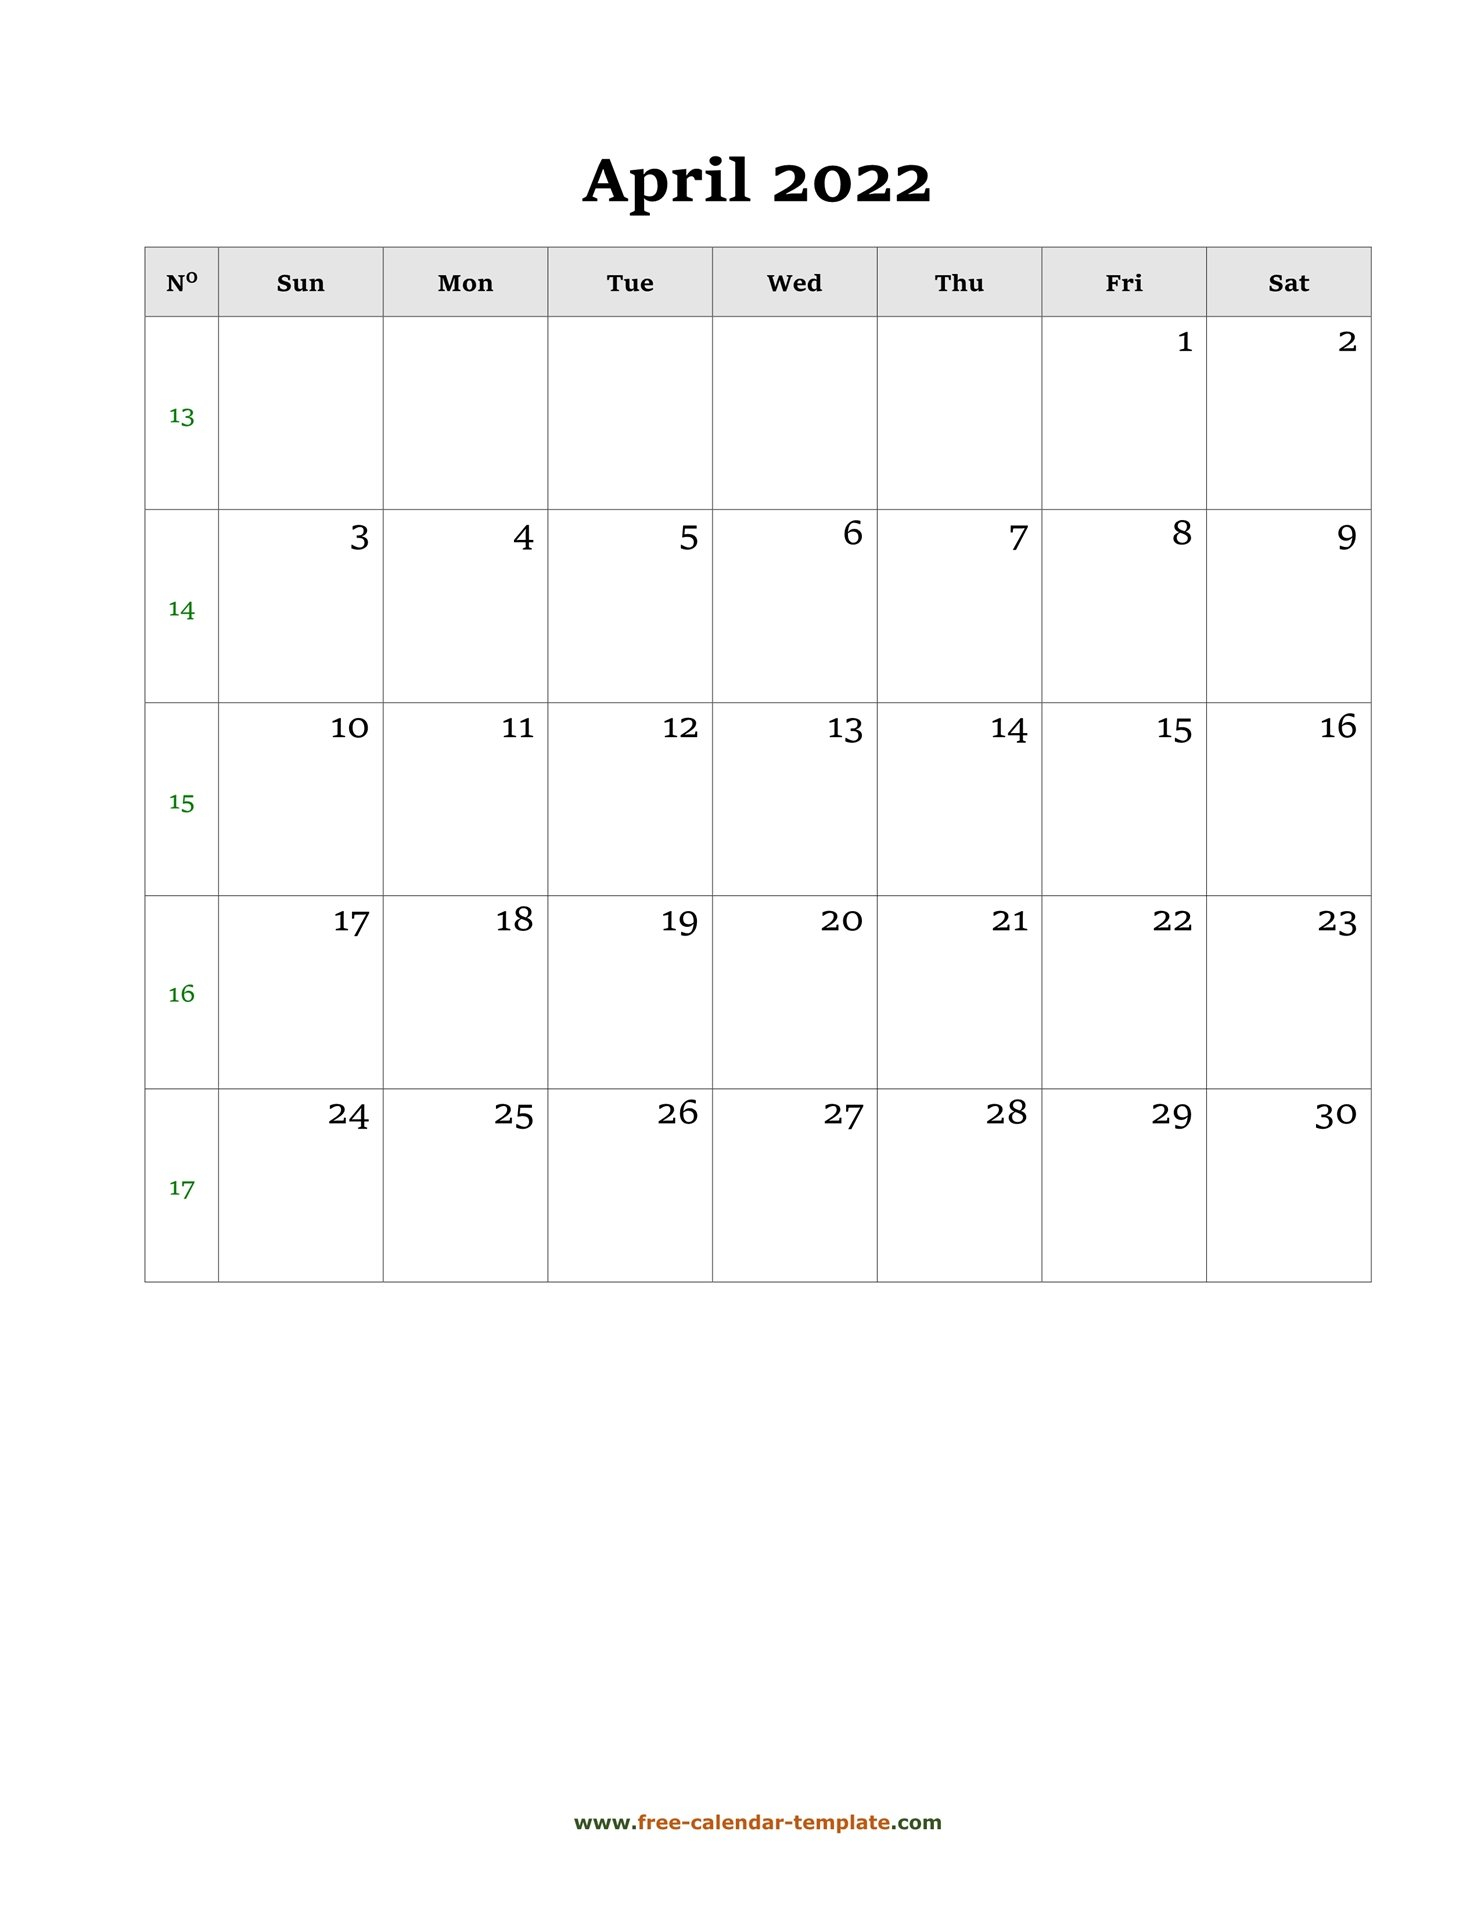 April Calendar 2022 Simple Design With Large Box On Each throughout Blank Calendar Printable April 2022 Graphics